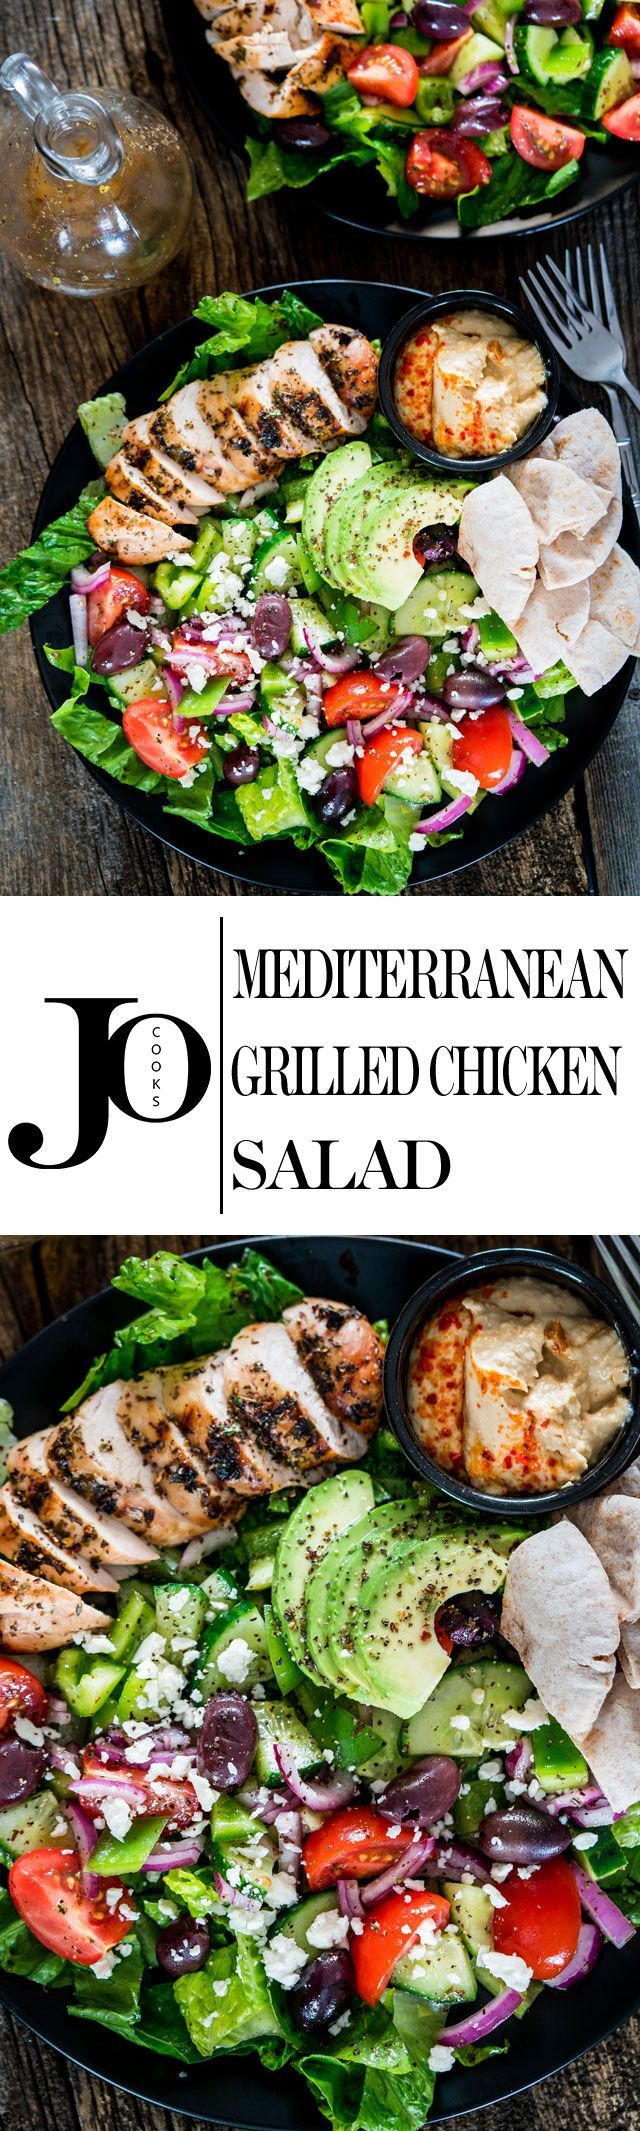 Mediterranean Grilled Chicken Salad - the perfect summer salad full of Mediterranean flavors! Marinated Greek chicken with an extremely delicious salad!